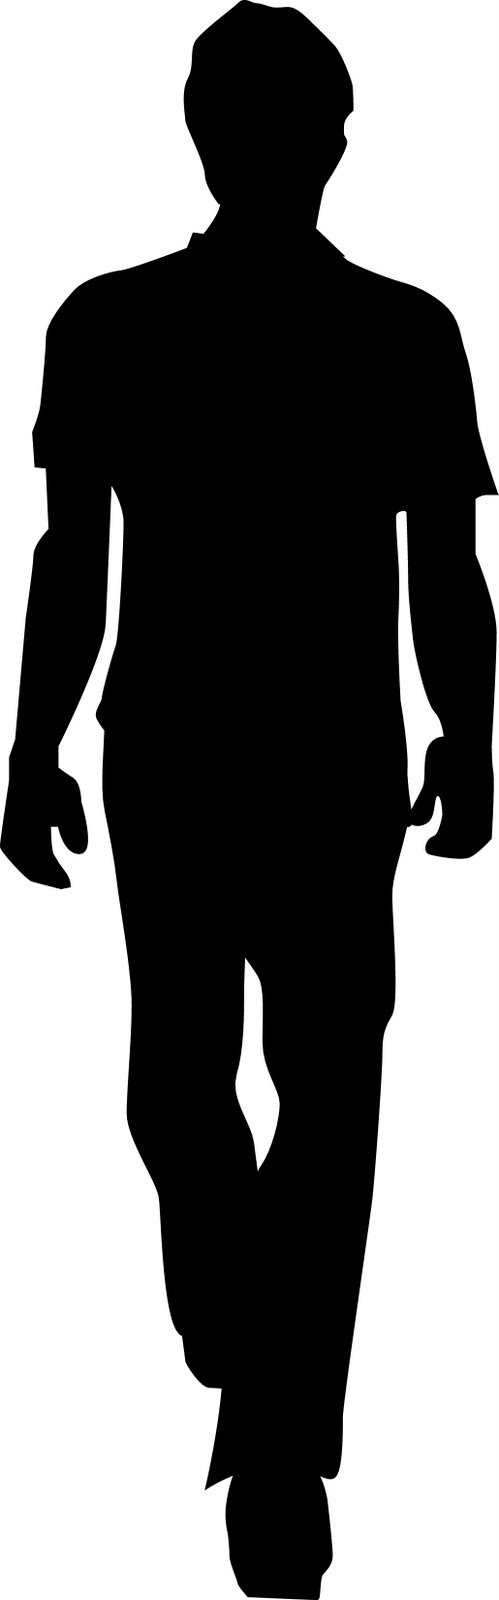 499x1600 Person Walking Clipart